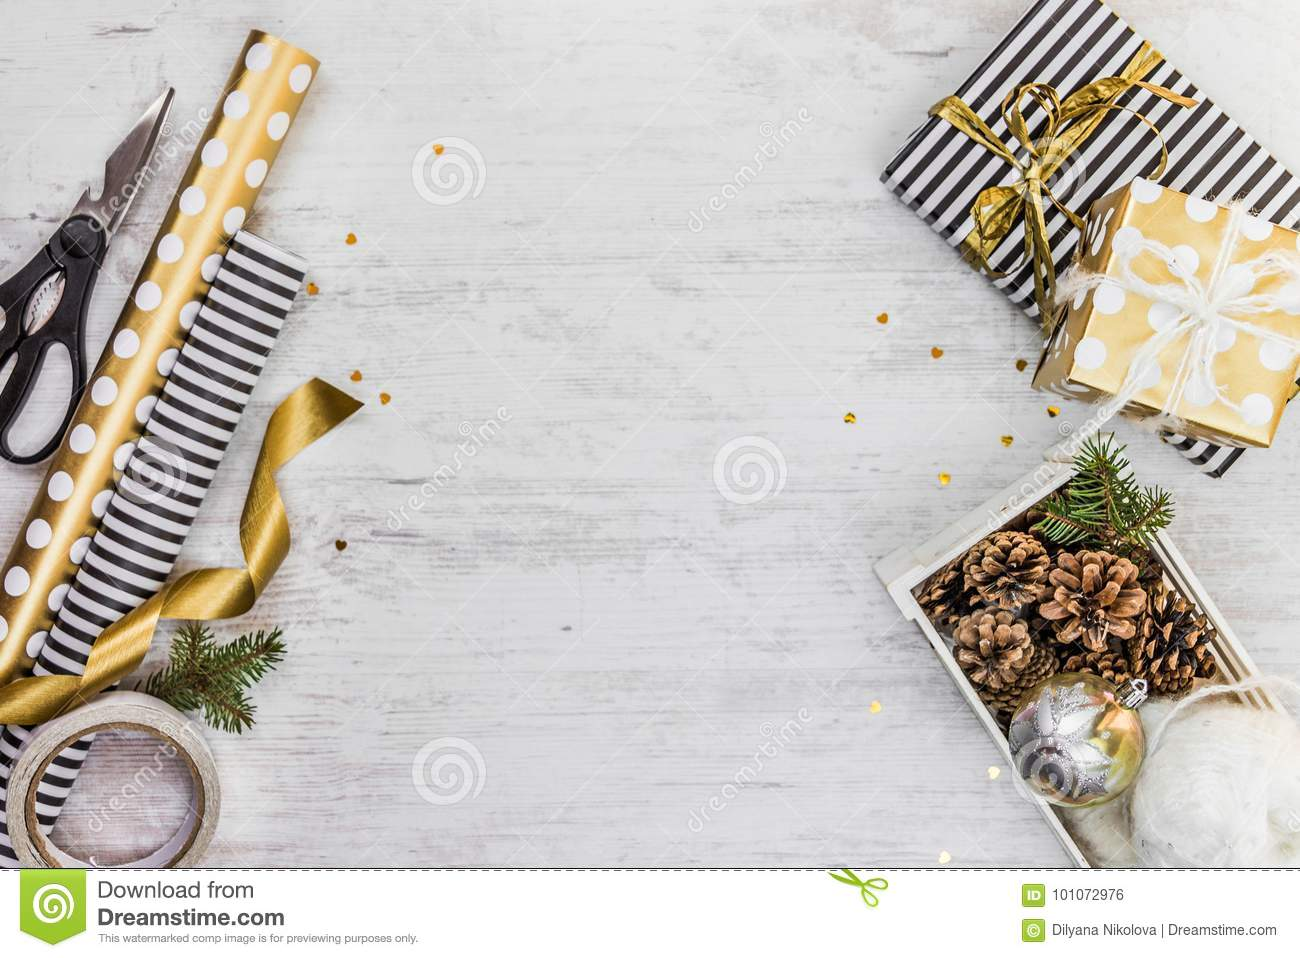 Gift box wrapped in black and white striped paper with golden ribbon, a crate full of pine cones and christmas toys and wrapping m